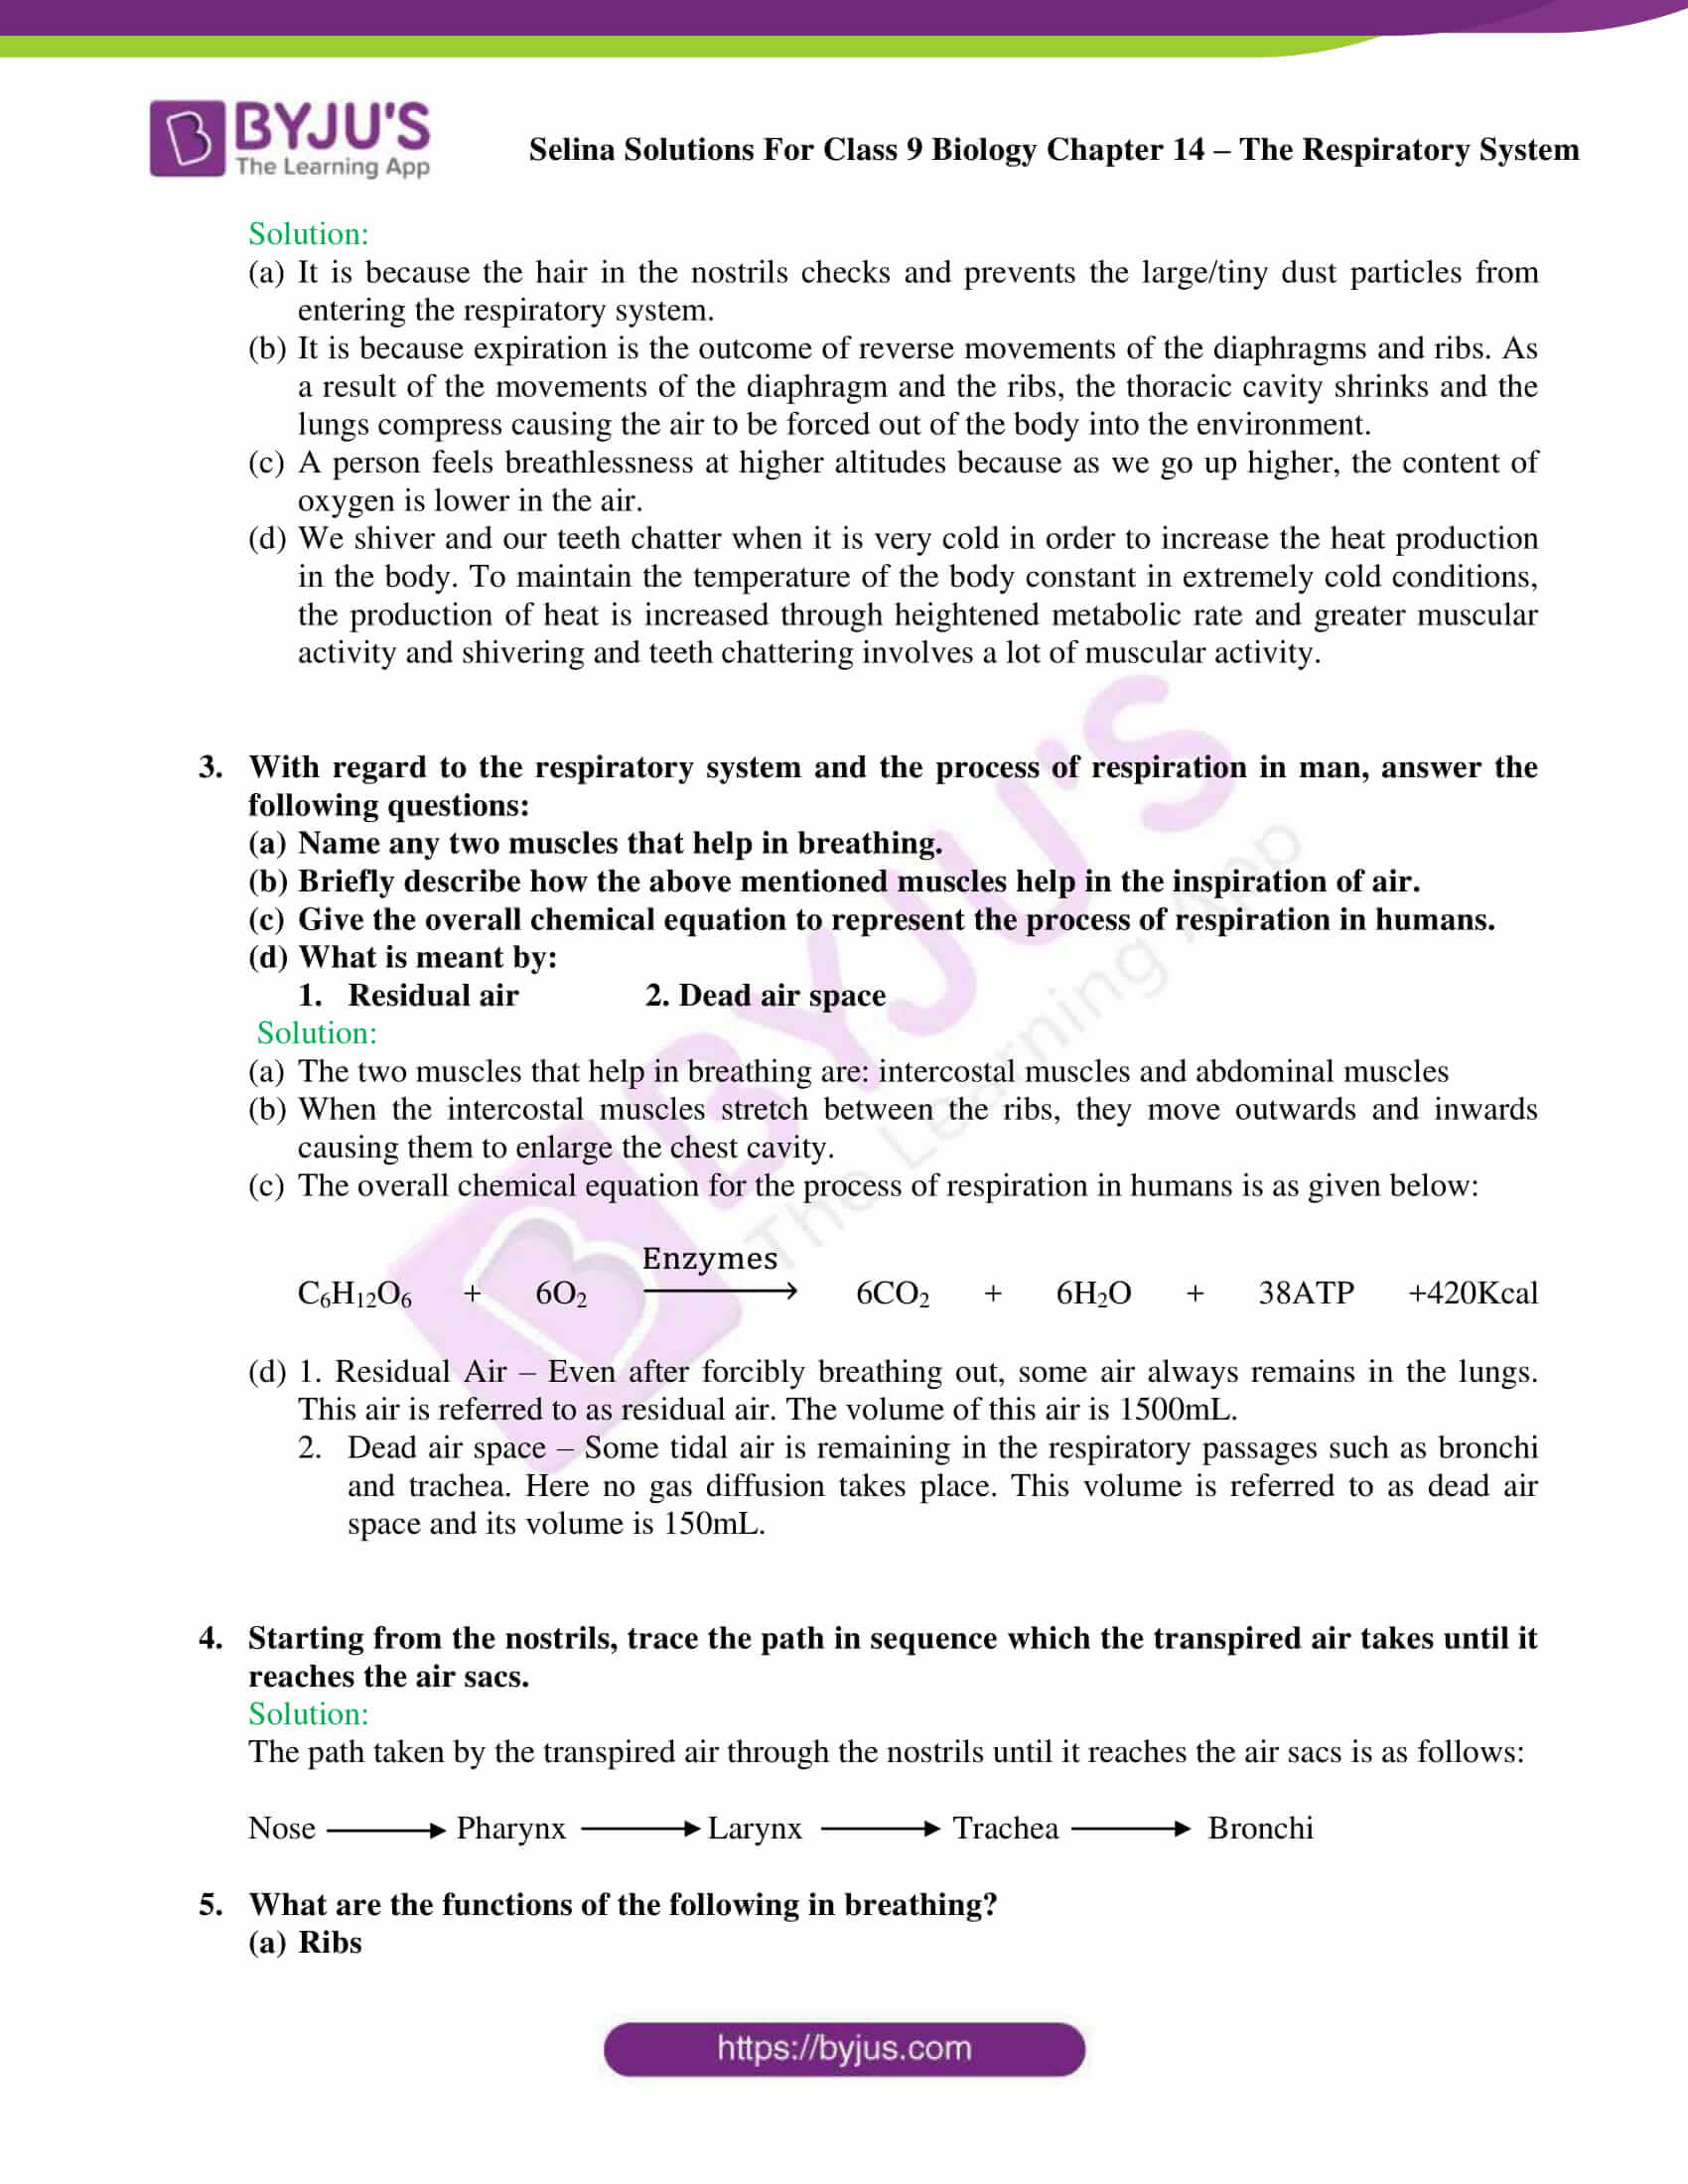 Selina Solutions Class 9 Biology Chapter 14 part 11